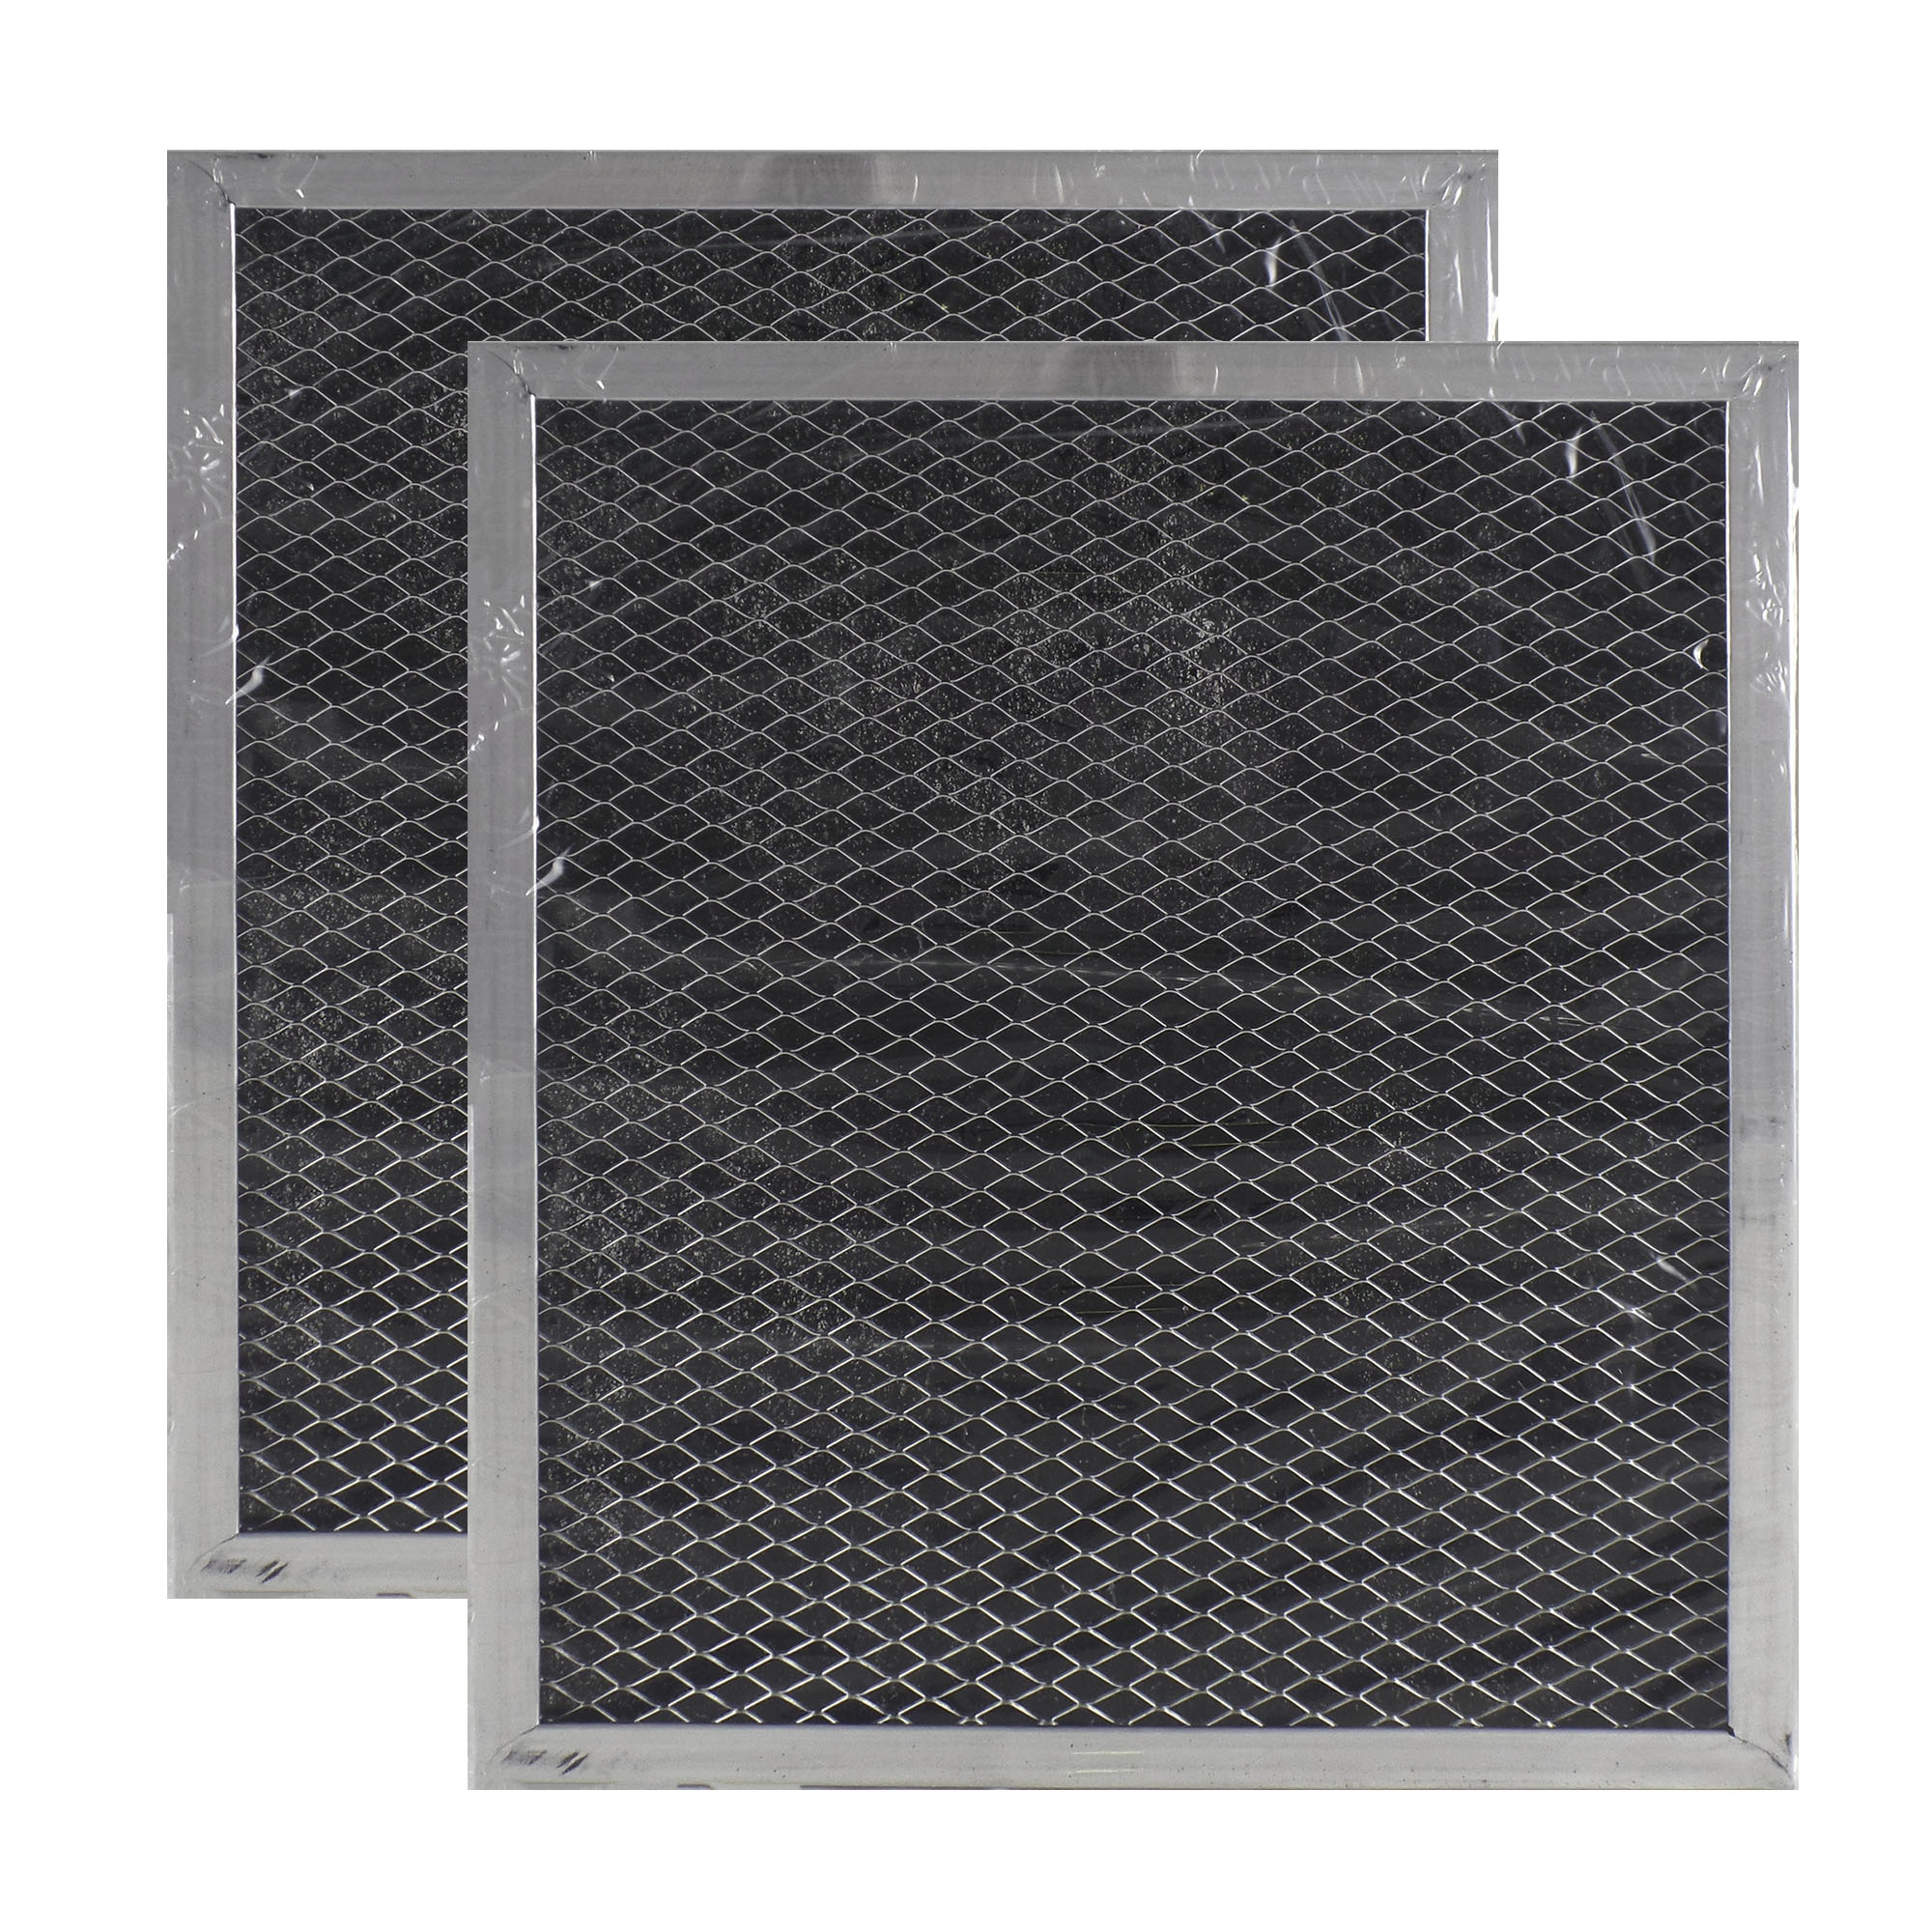 2 PACK SC88152 Broan Charcoal Carbon Filter Replacements by Air Filter Factory